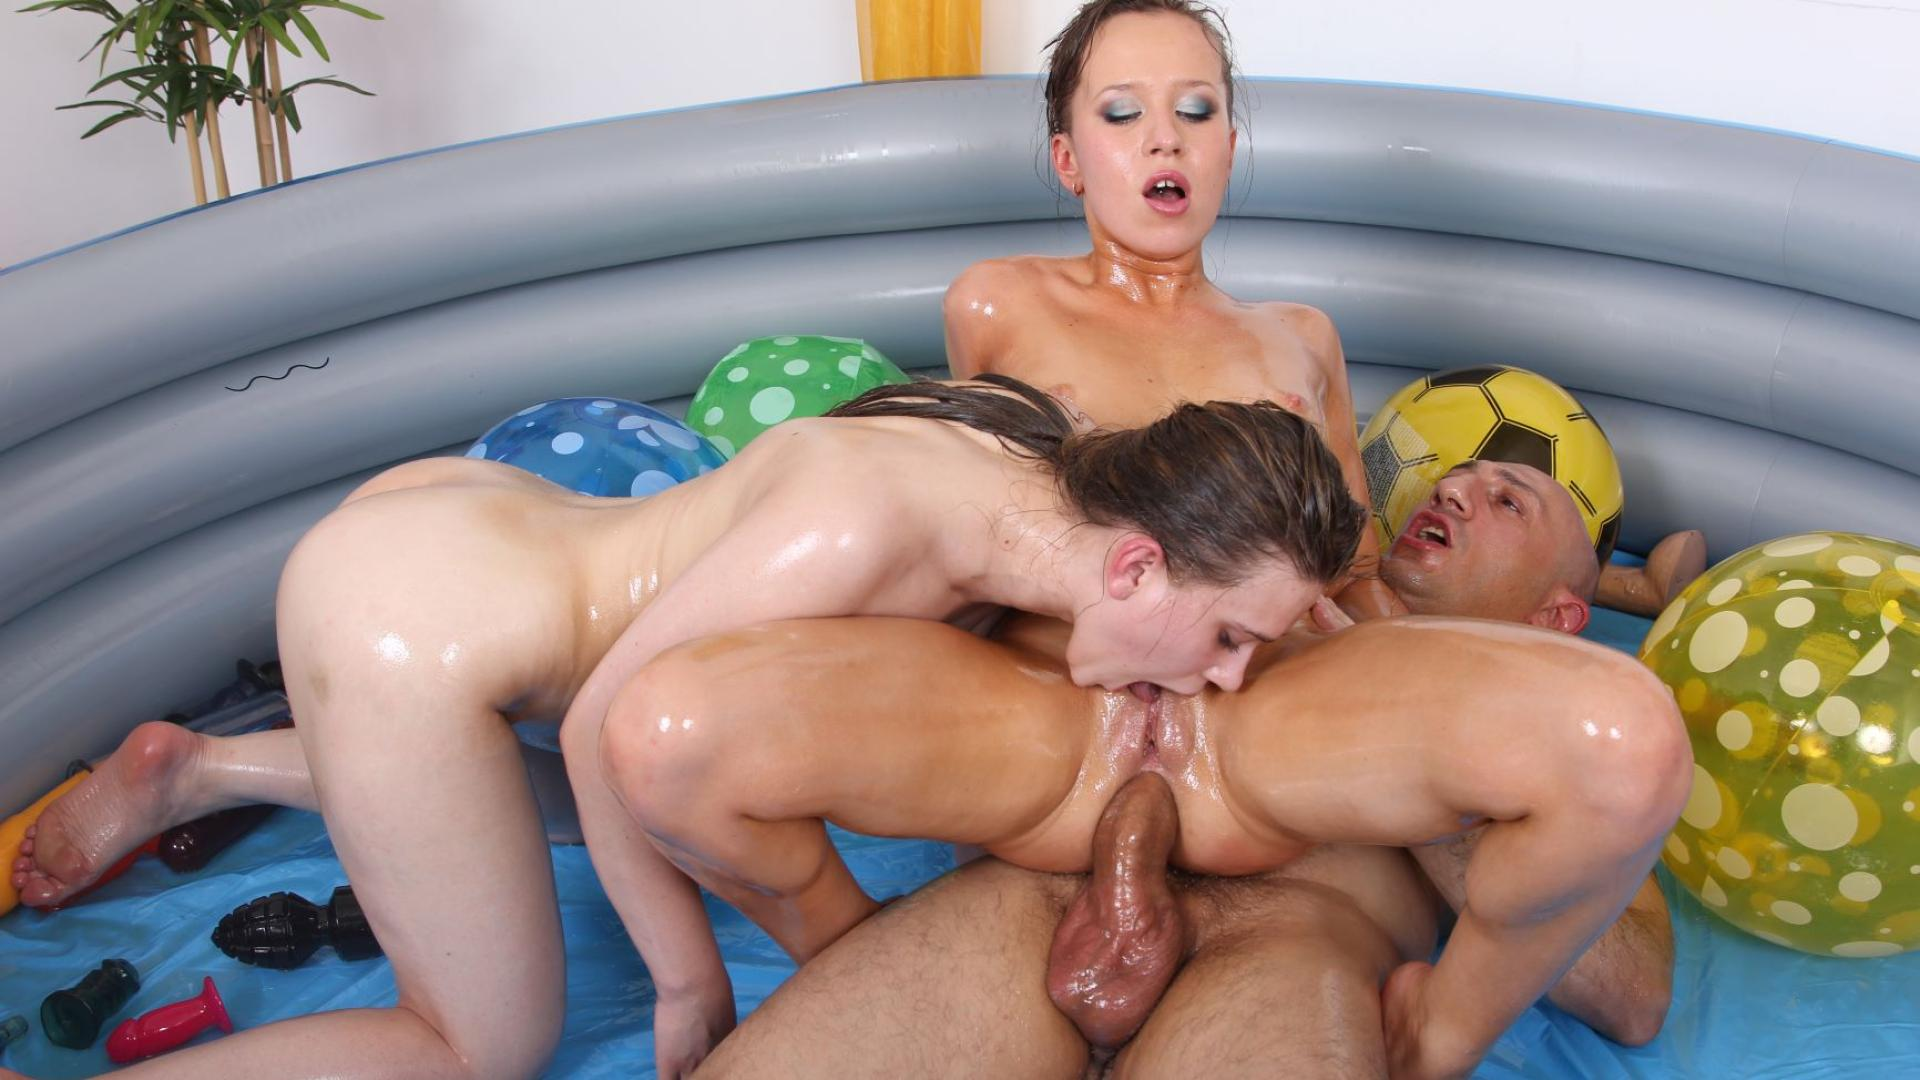 Oil, virginity, and threesome